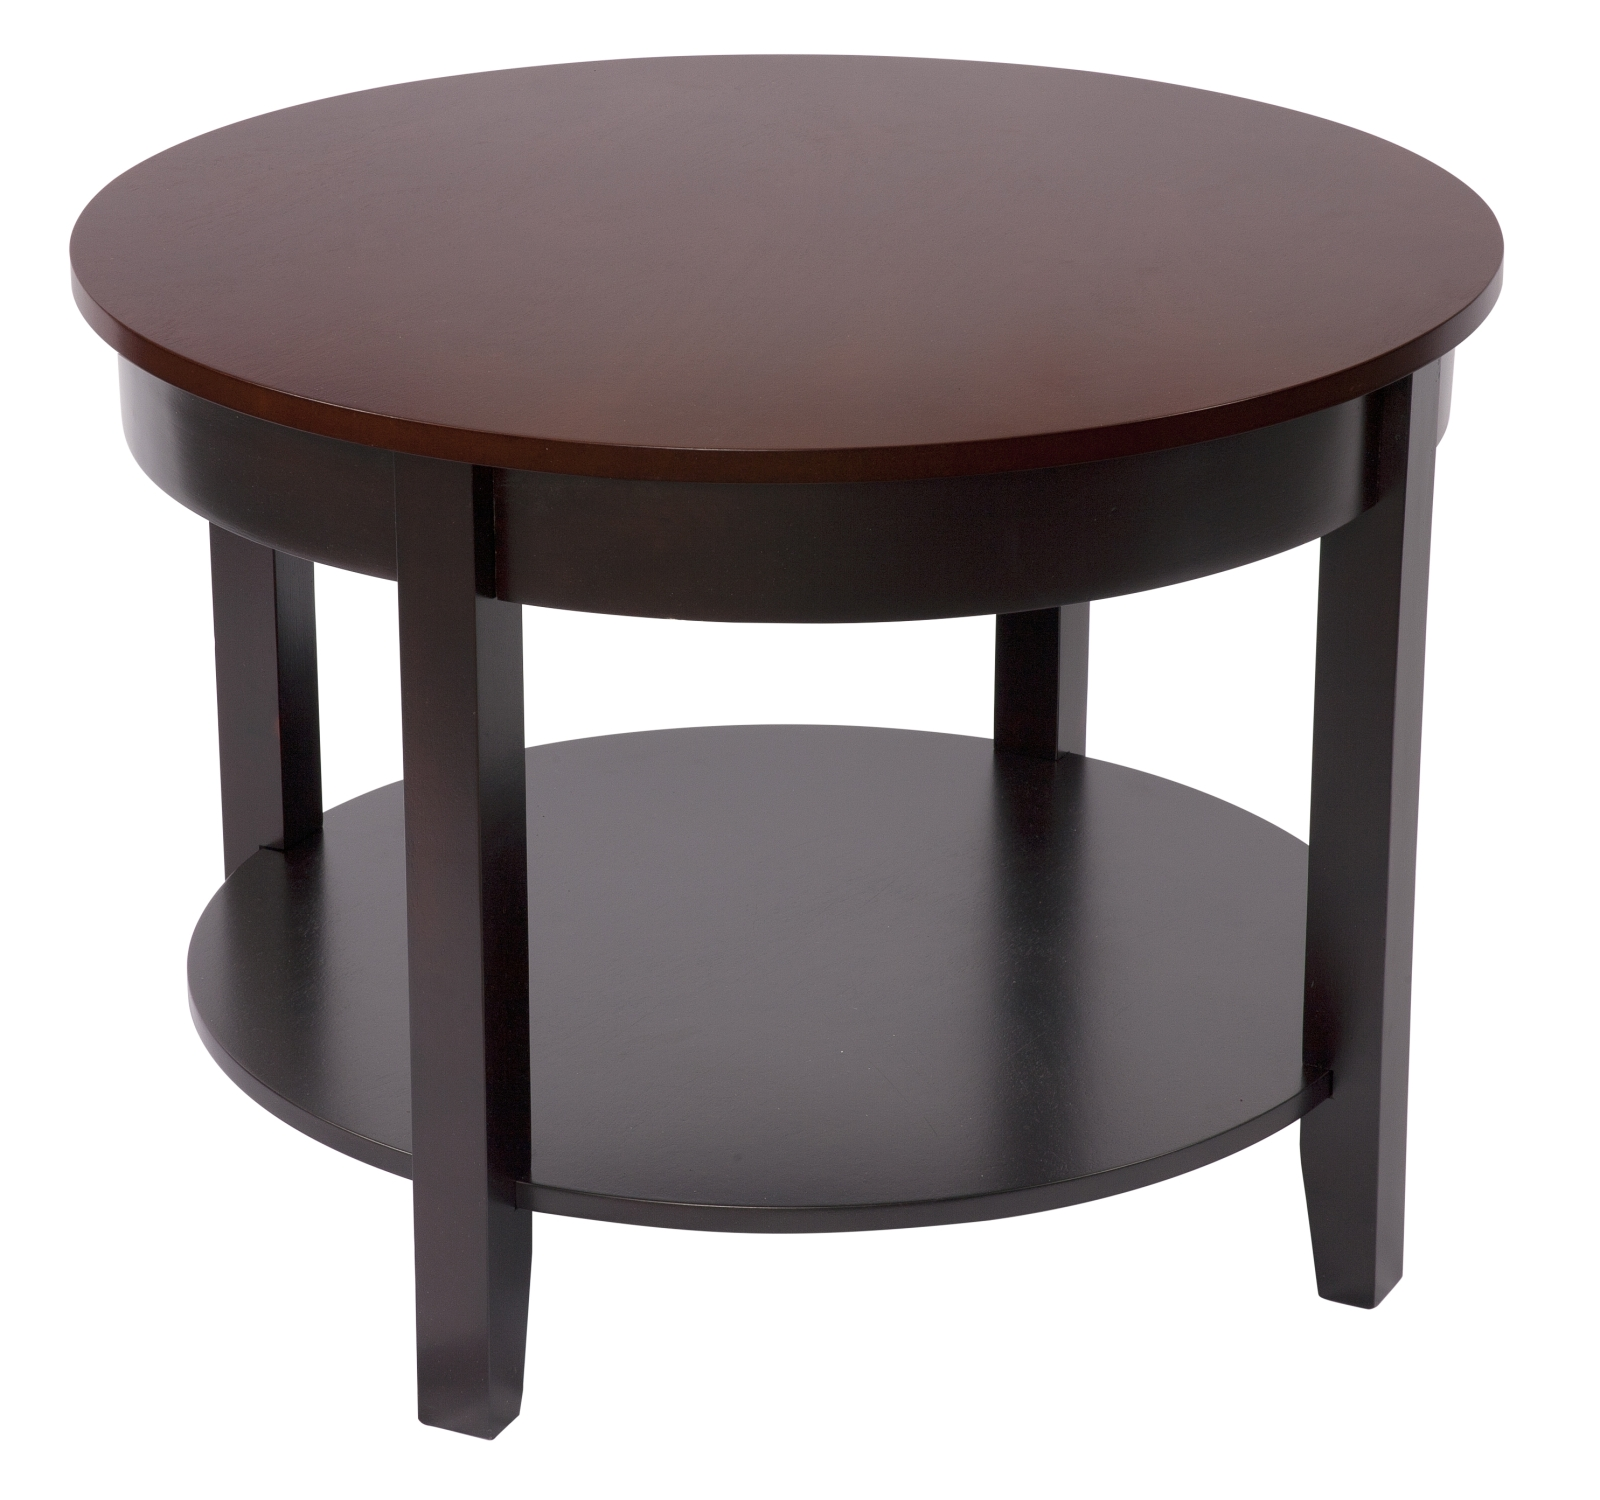 30 inch round coffee table 11